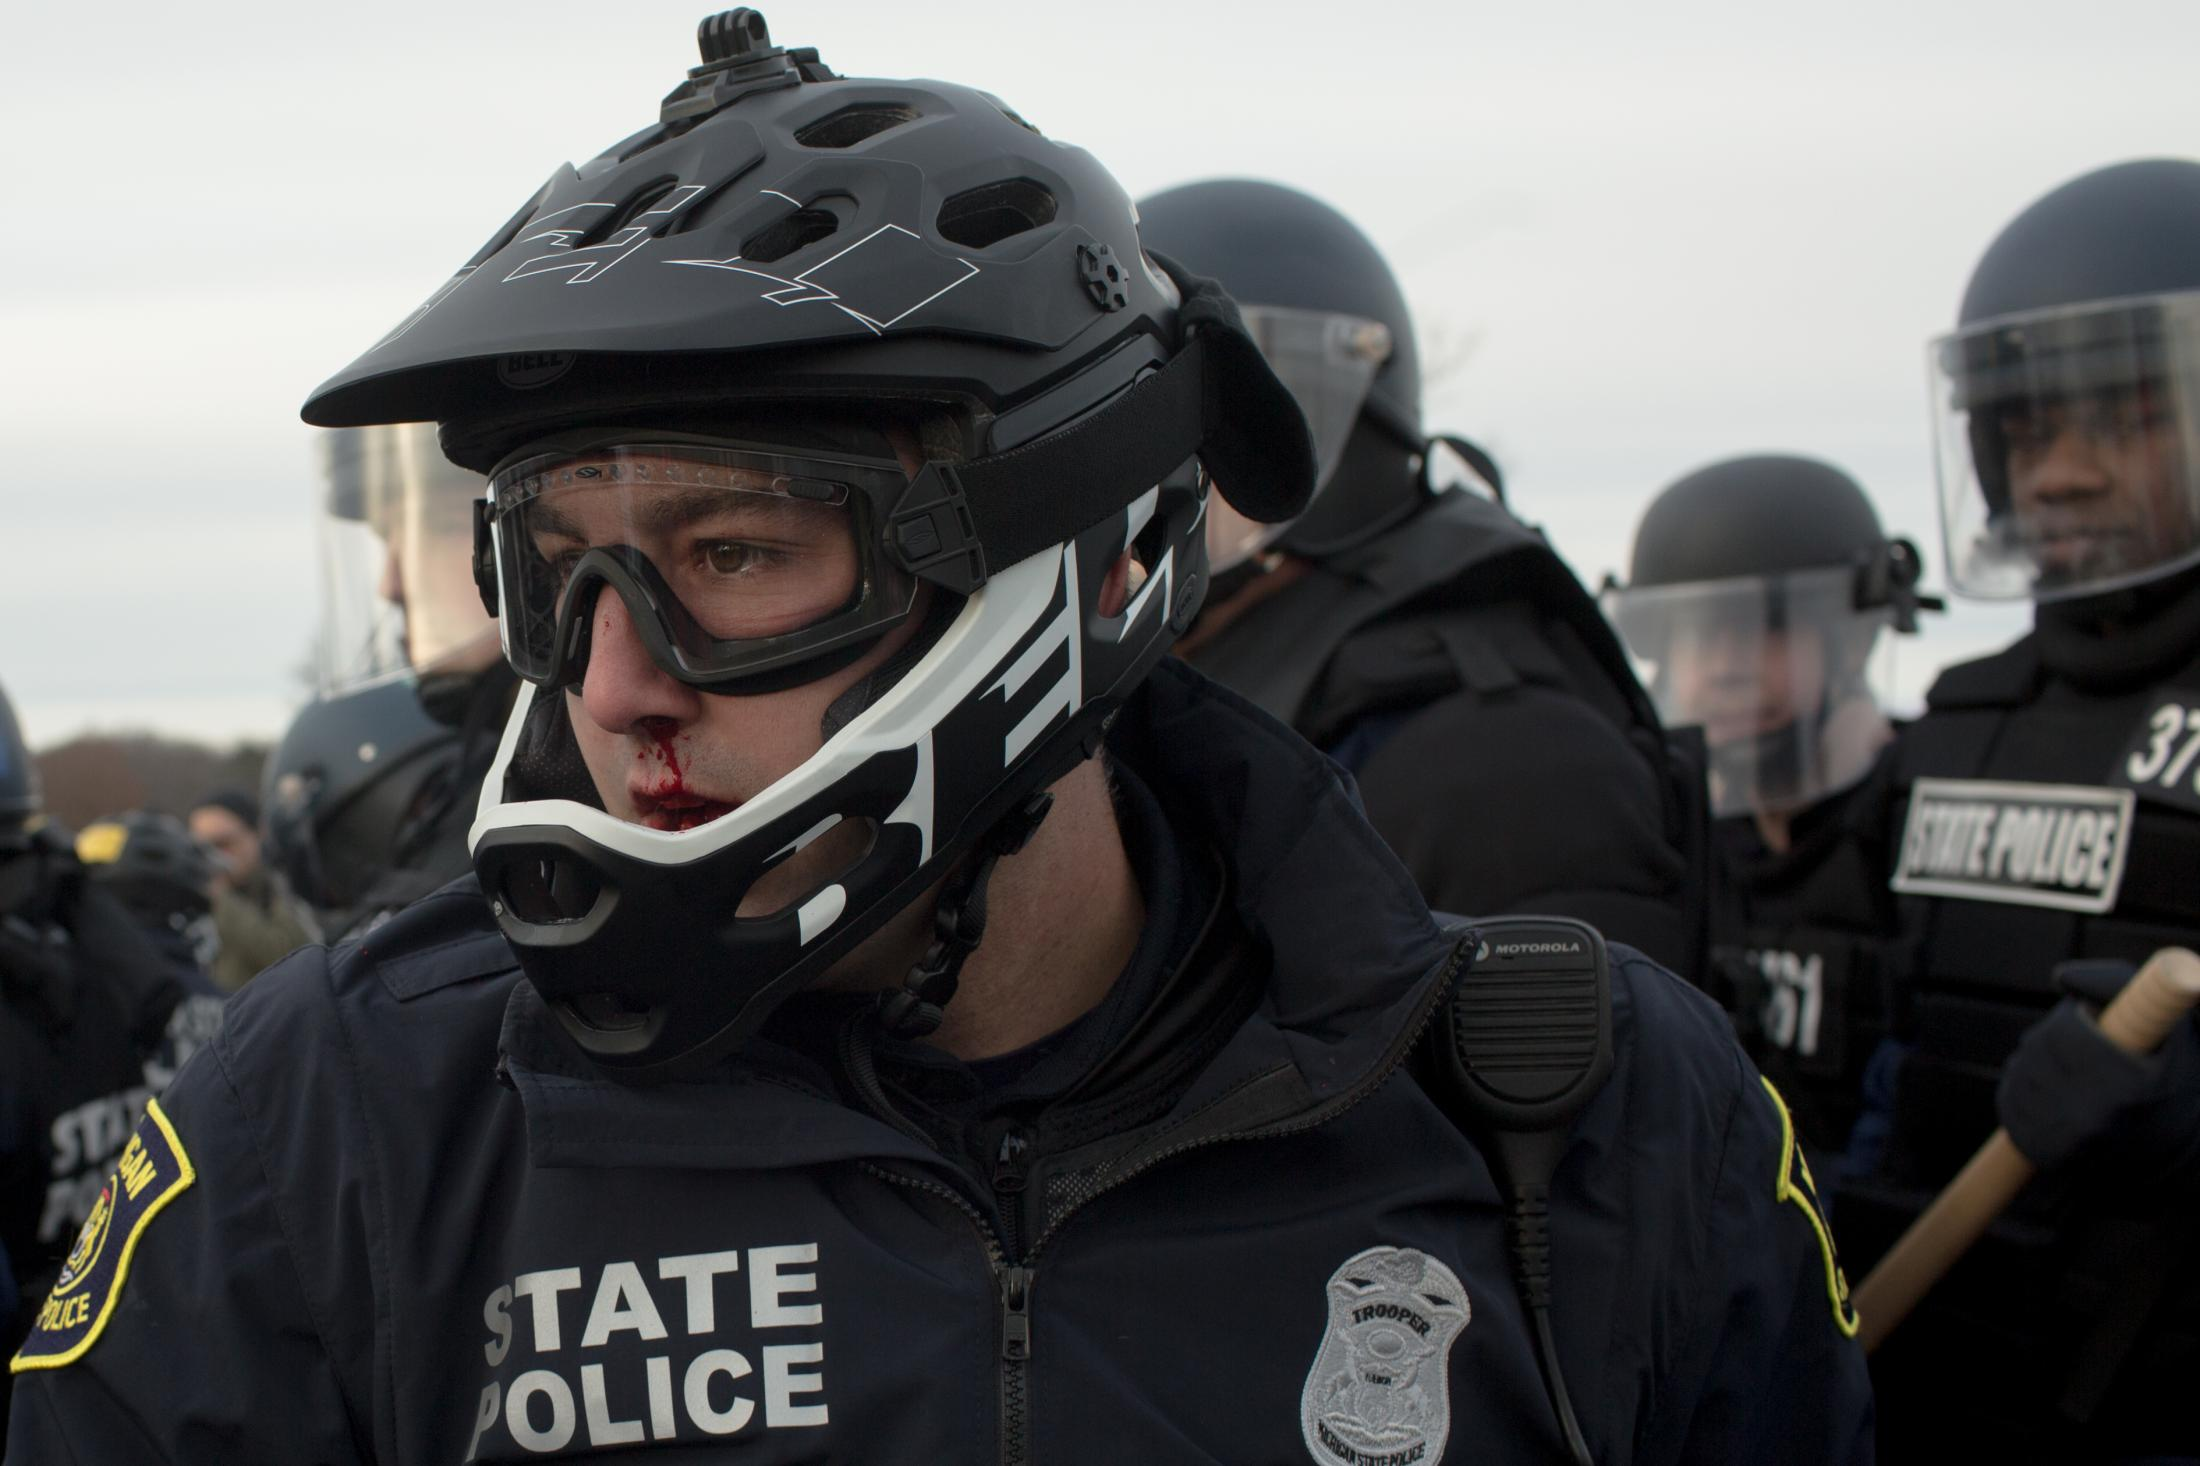 A Michigan State Police Officer with a bloody nose uses his bike to move protesters back outside of the venue that Richard Spencer was scheduled to speak at on the campus of Michigan State University near East Lansing, MI on March 5, 2018.